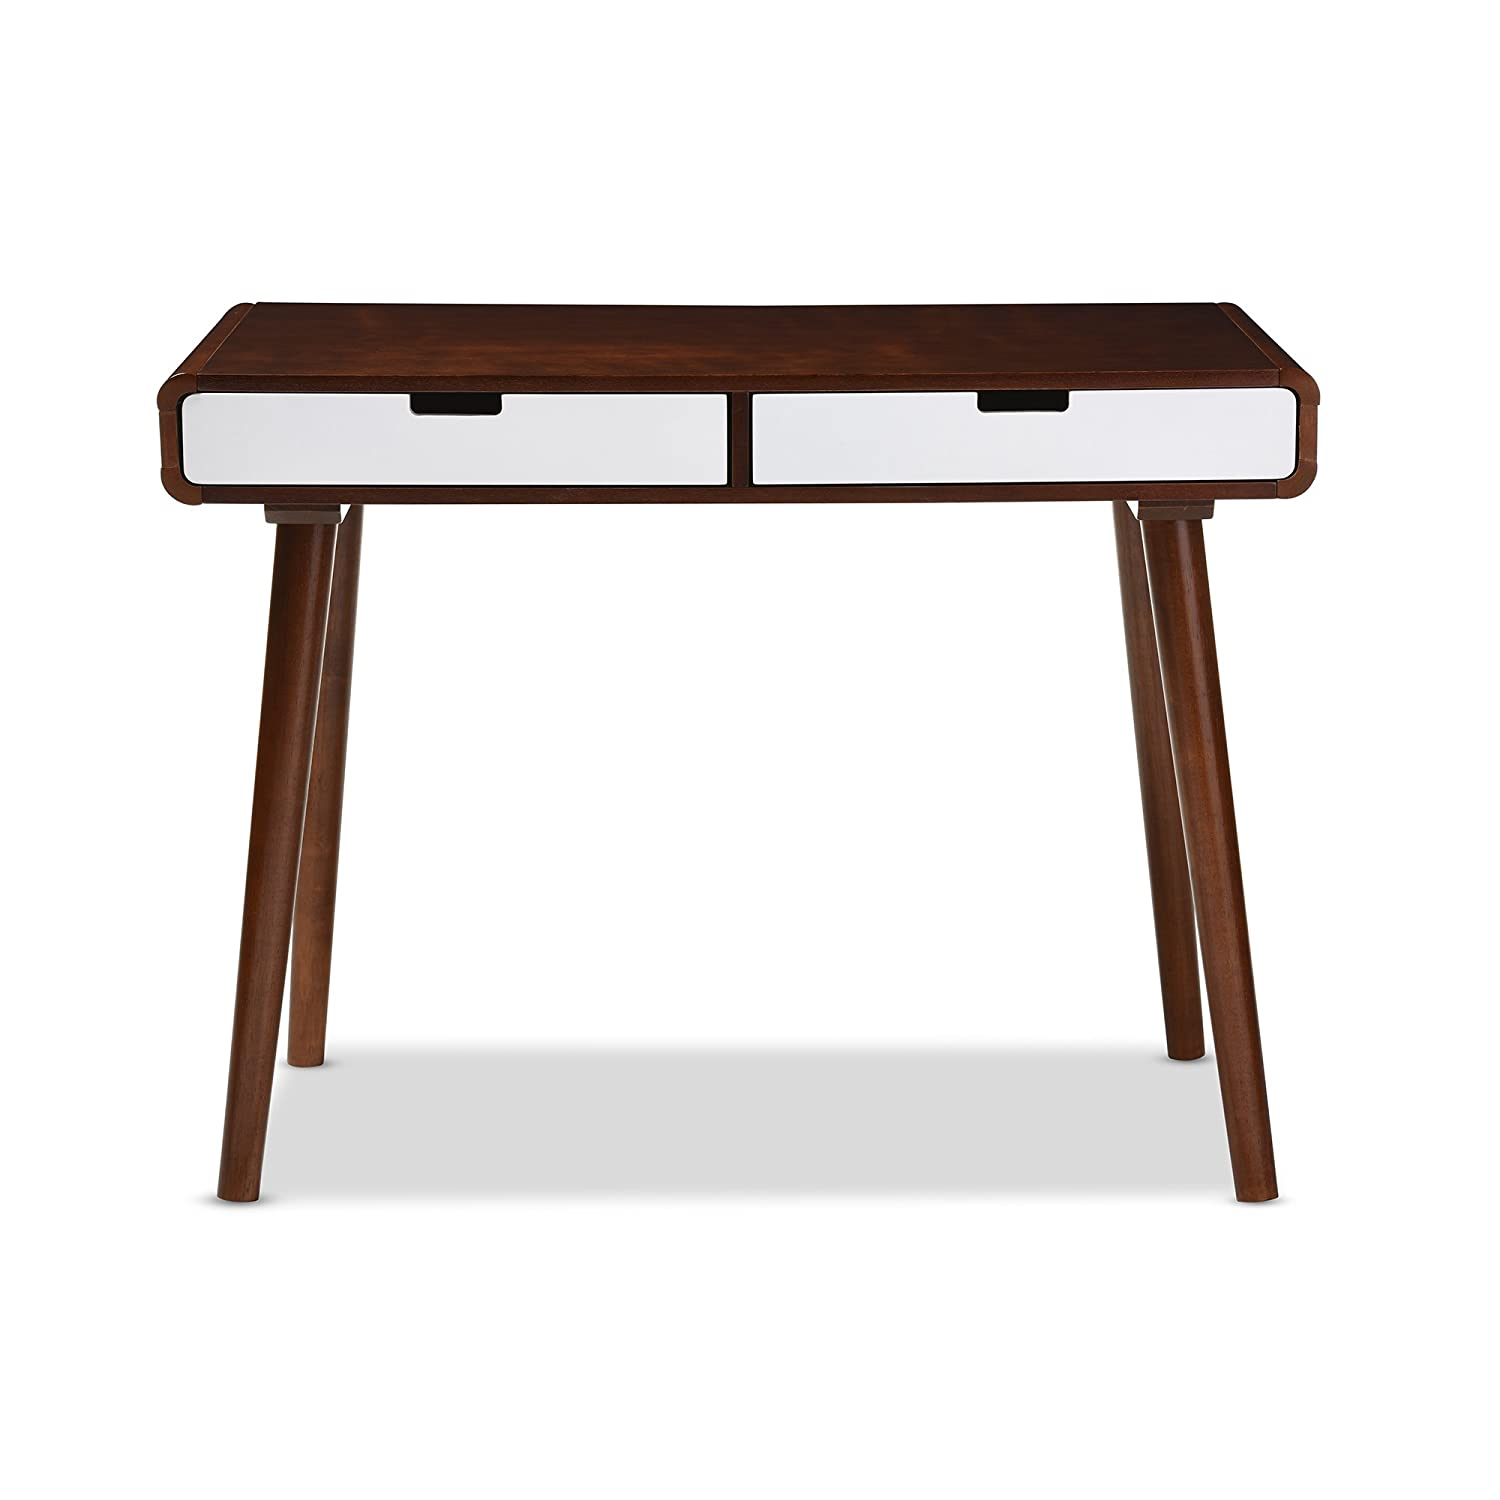 home office writing desk. Amazon.com: Baxton Furniture Studios Casarano Two-Tone Finish 2 Drawer Wood Home Office Writing Desk, Dark Walnut/White: Kitchen \u0026 Dining Desk A